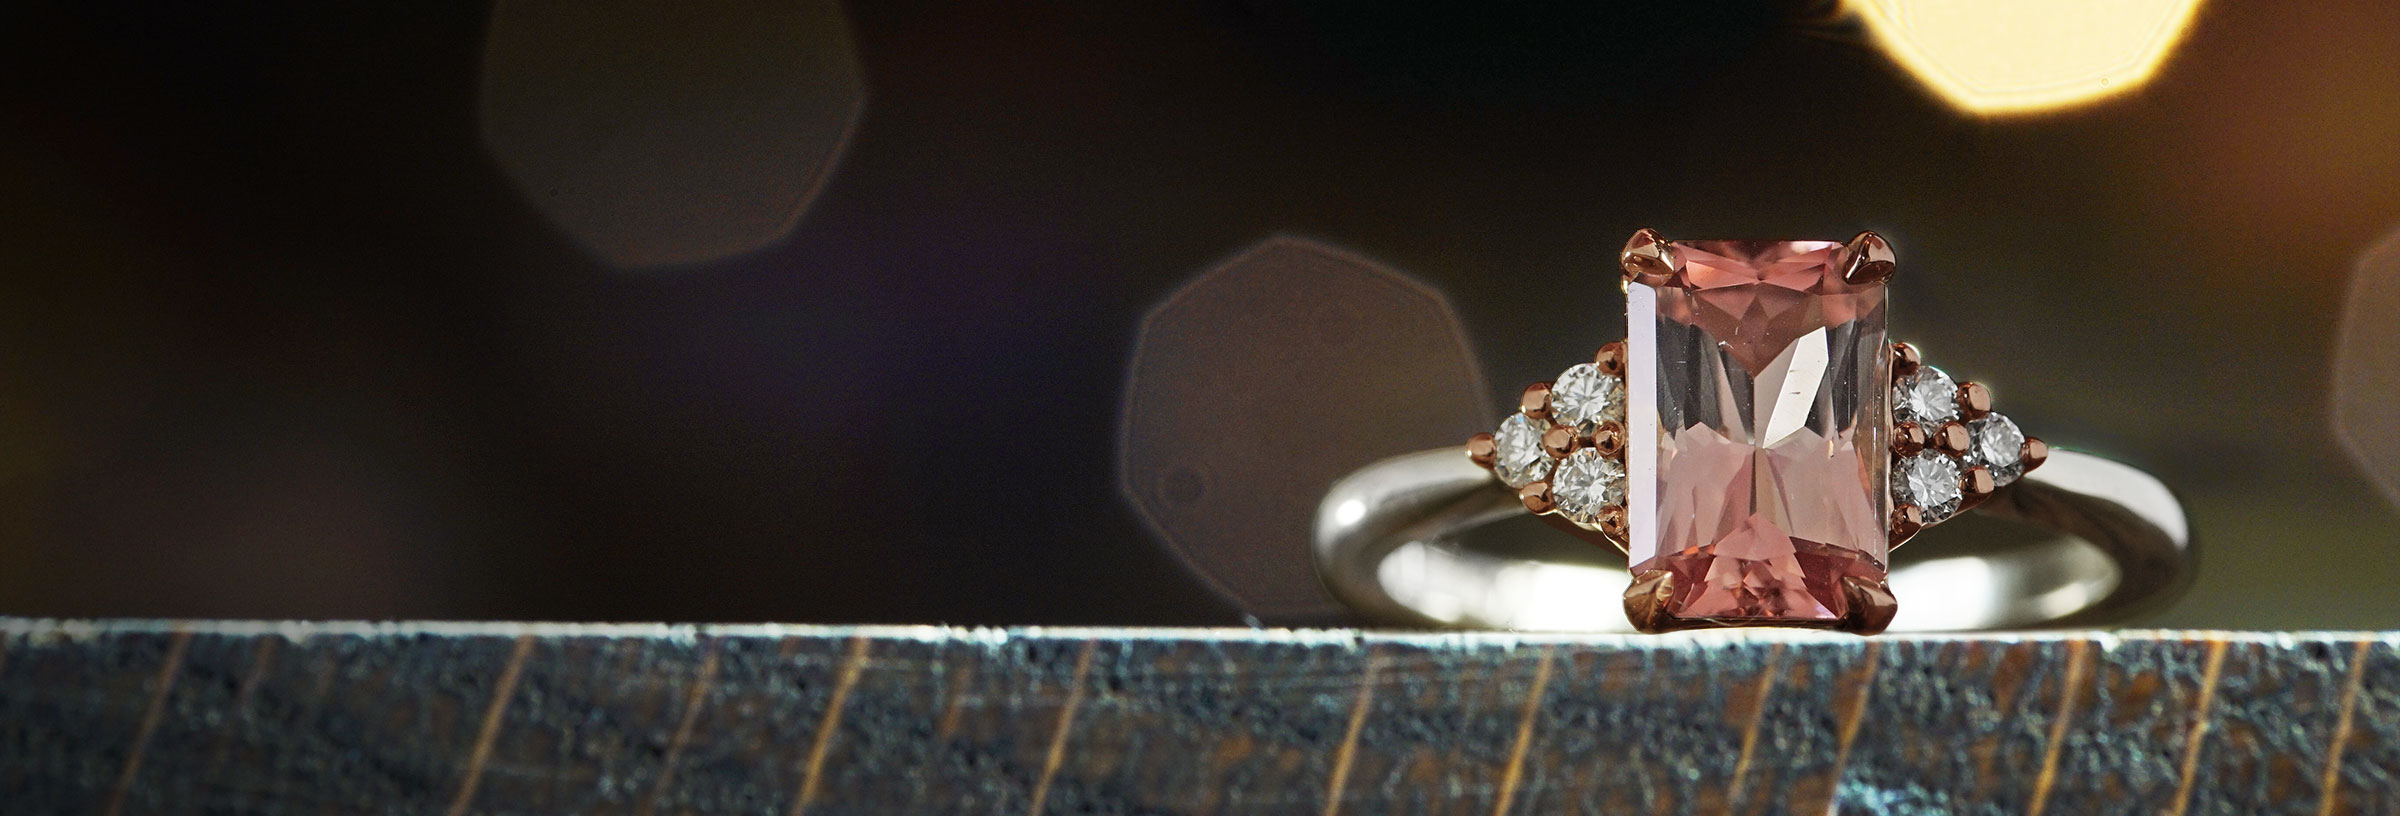 white-and-rose-gold-peach-tourmaline-and-diamond-engagement-ring